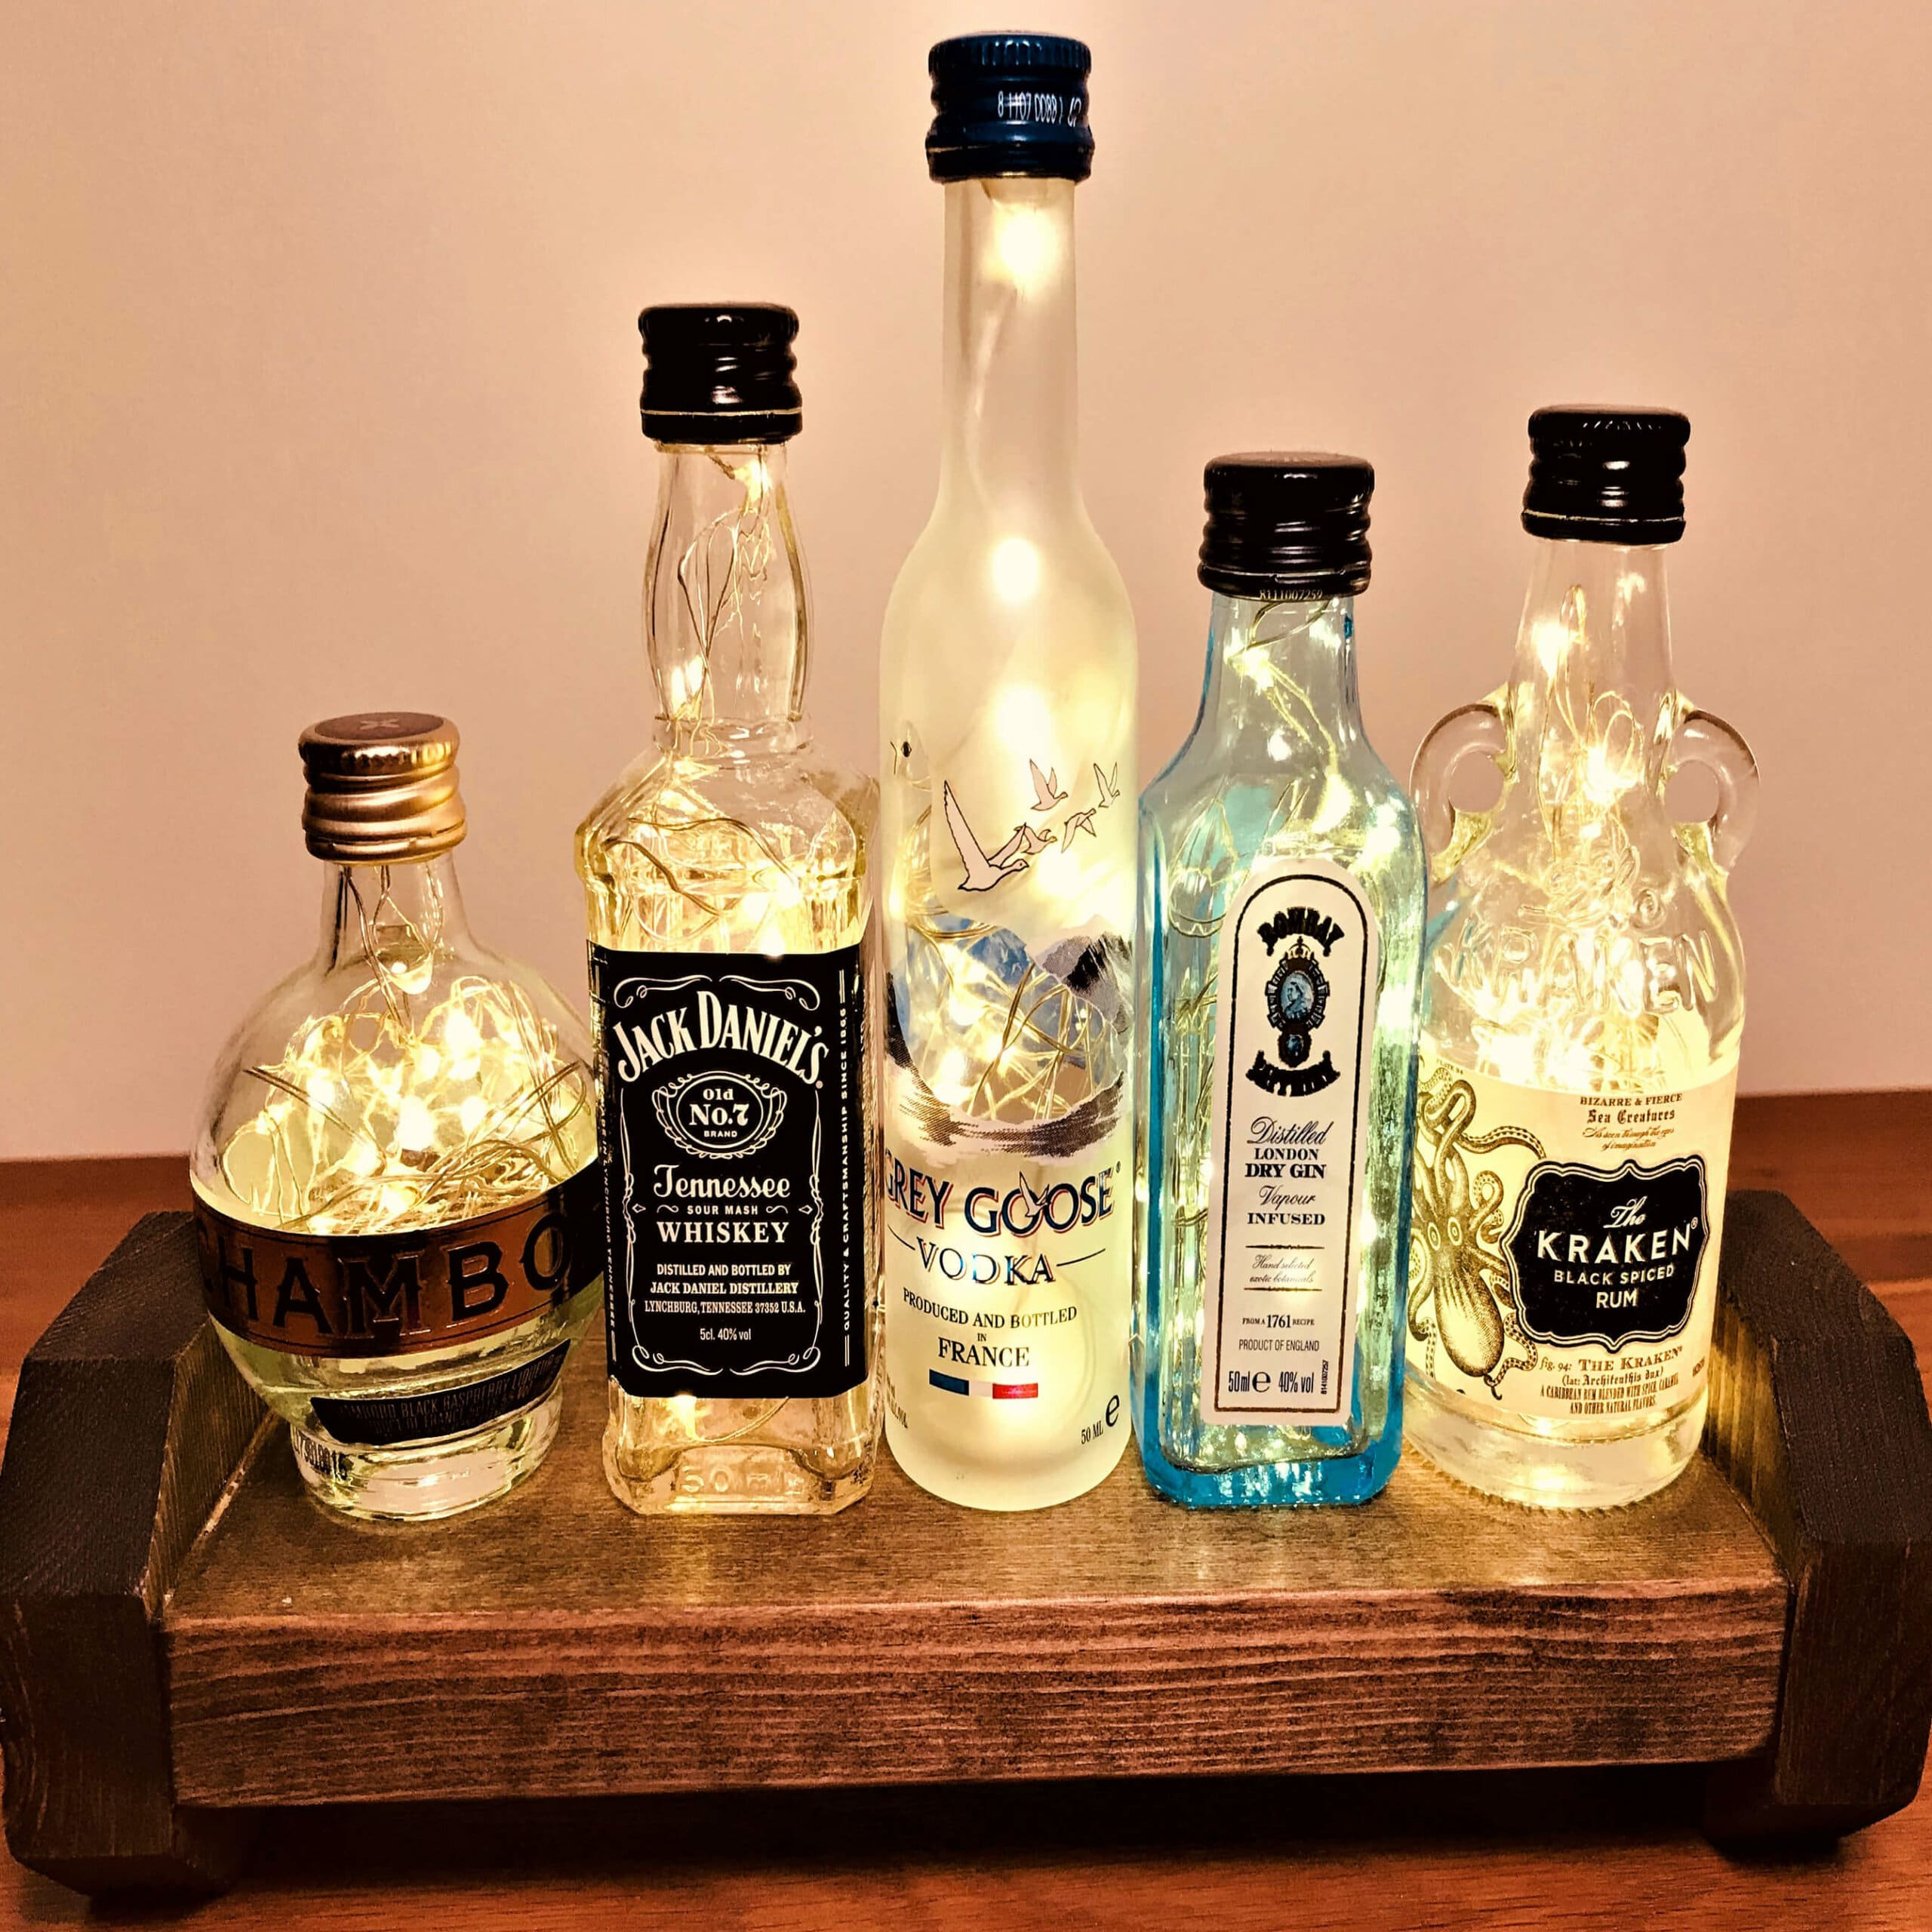 A selection of miniature bottles that have been upcycled into beautiful lights.